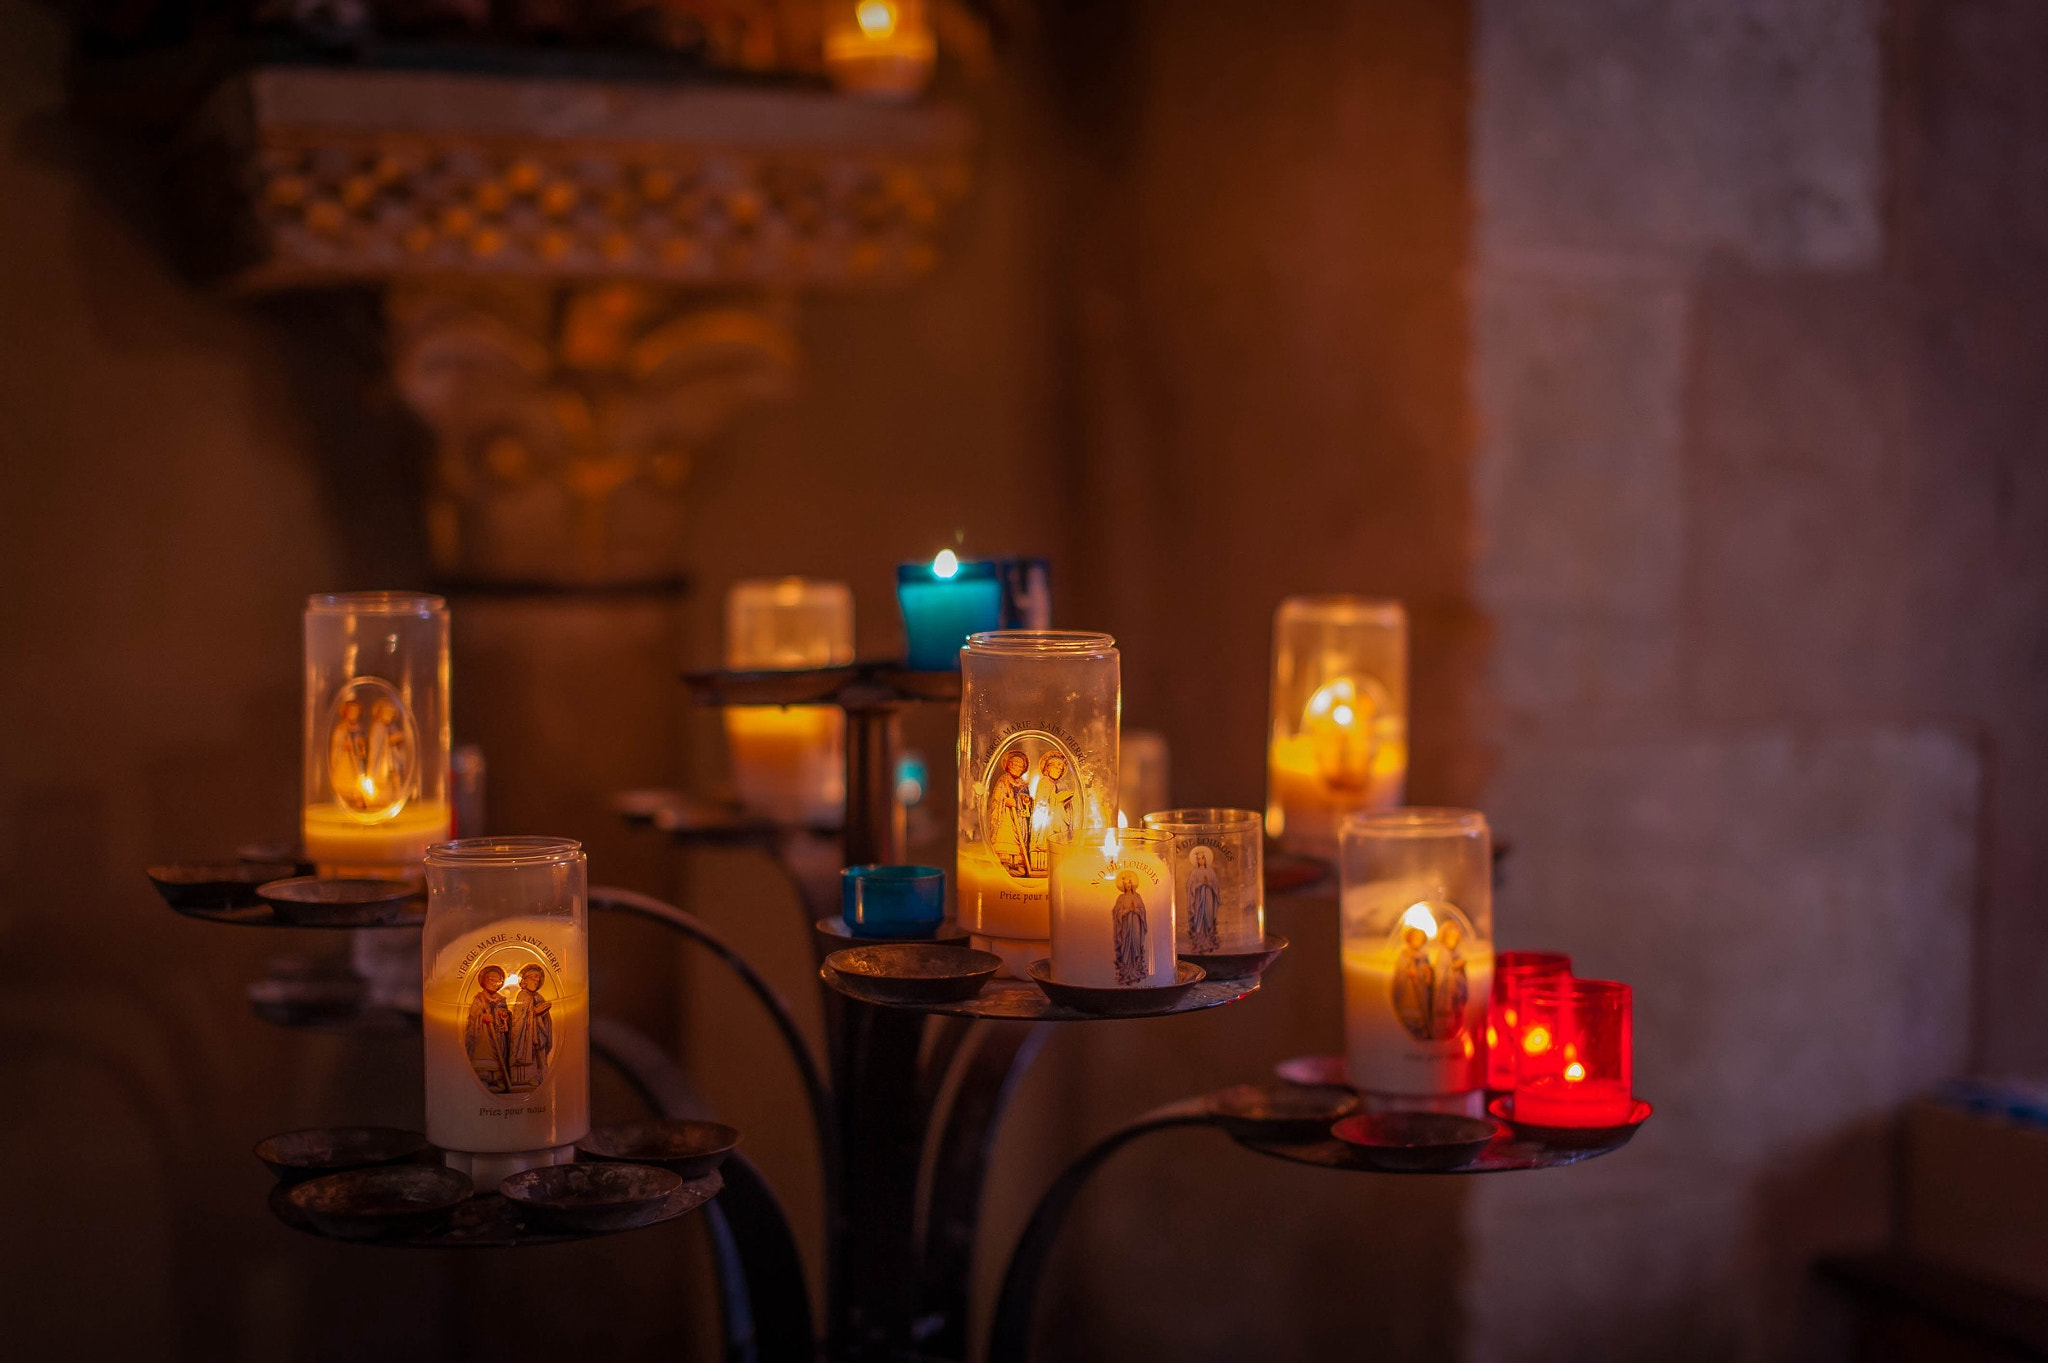 Photograph Candles of conques by serge vincent on 500px